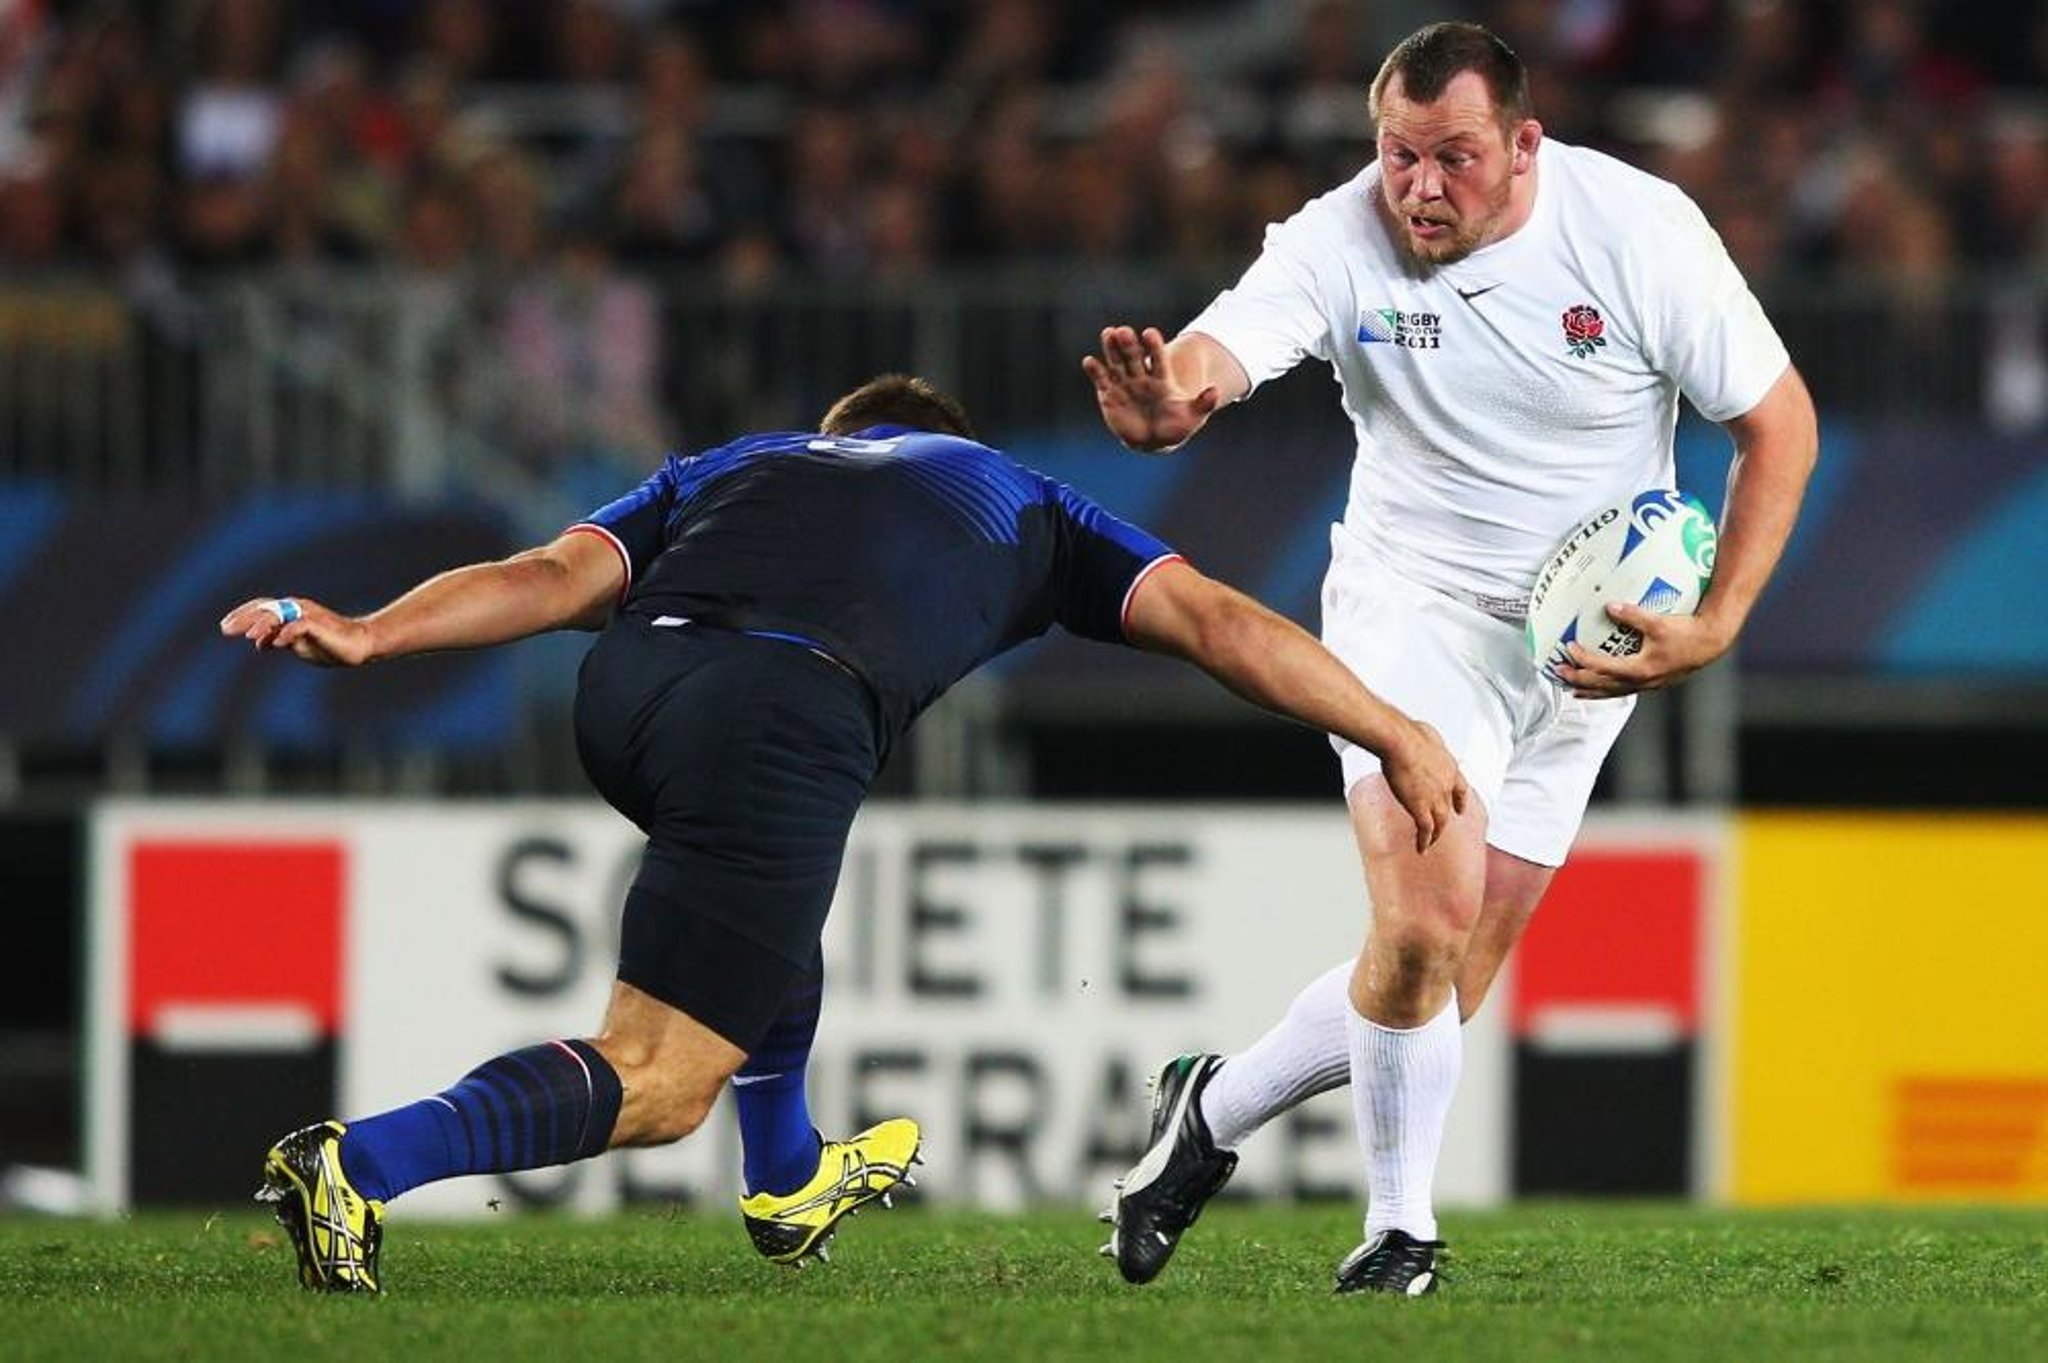 Early onset dementia: symptoms of the illness, why it affects rugby players  - and is there a cure? | The Scotsman